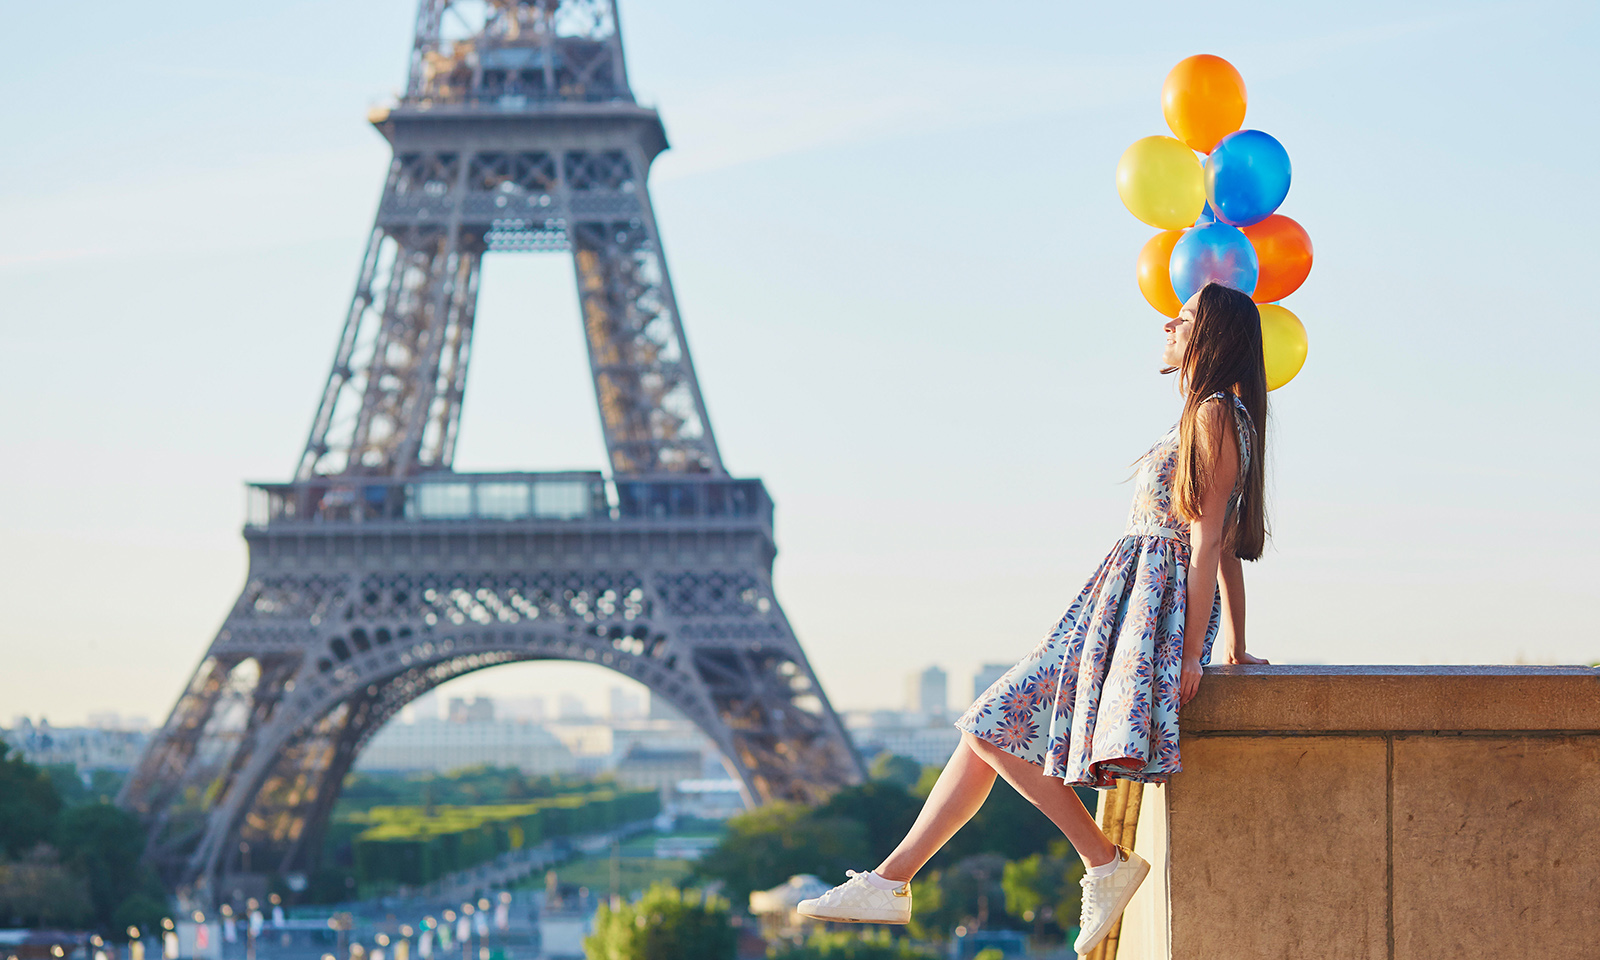 instagram-influencers-worth-your-attention-main-image-woman-with-balloons-in-paris